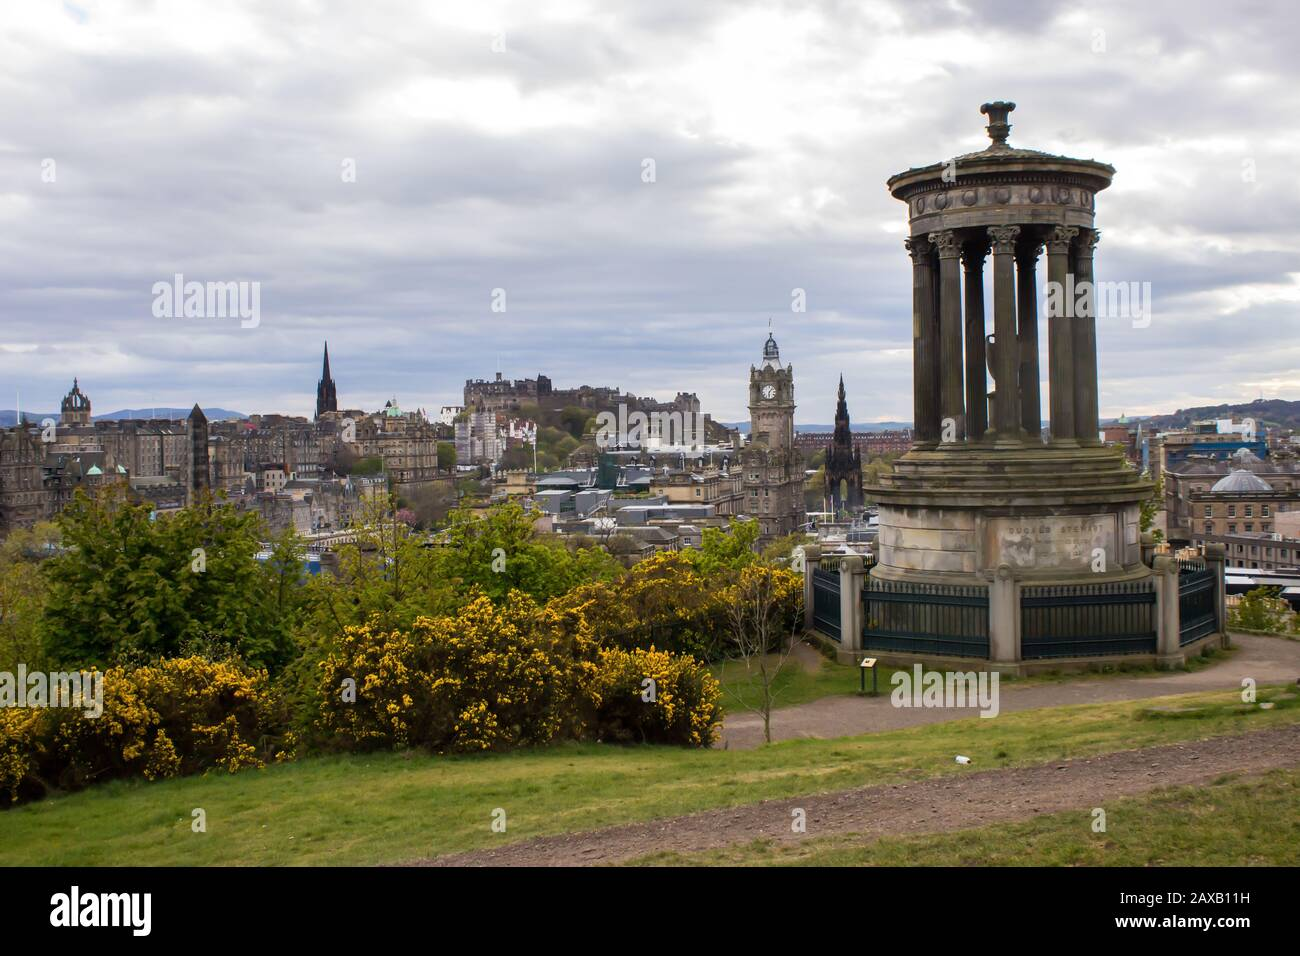 The Dugald Stewart Monument, on Calton Hill, on a spring afternoon with a spectacular view of Castlerock and the Edinburgh Old Town Stock Photo